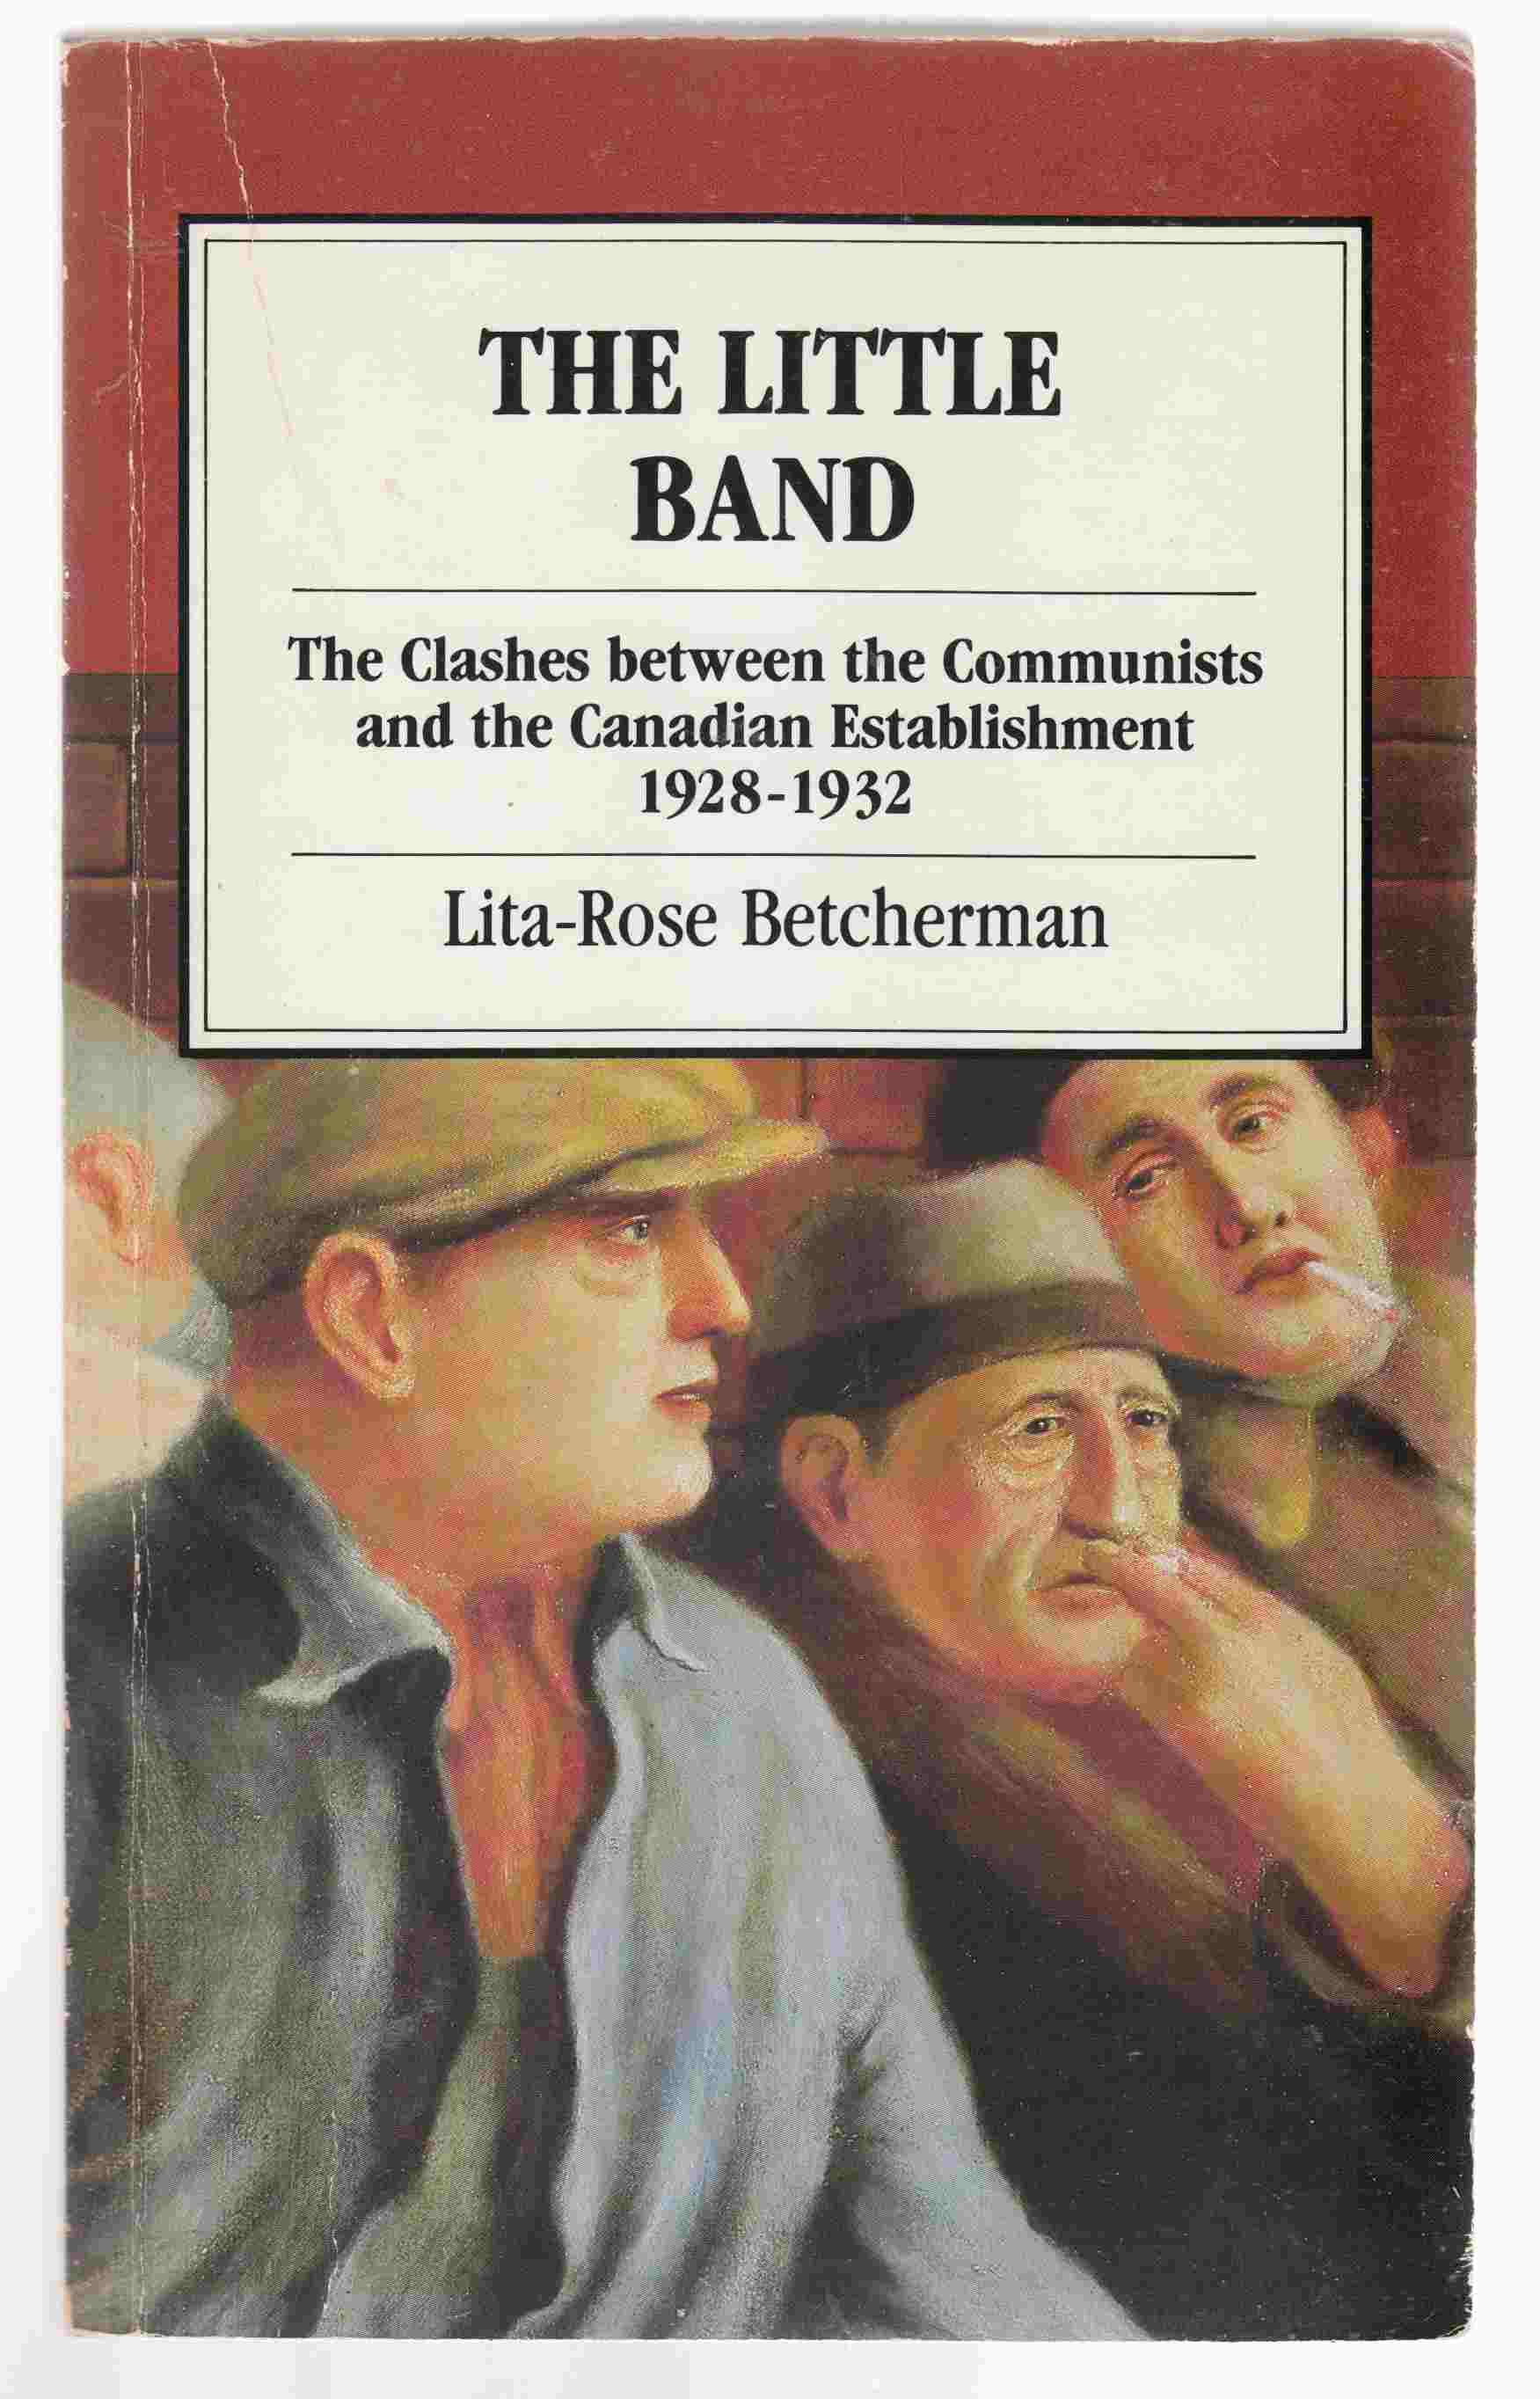 Image for The Little Band The Clashes between the Communist and the Canadian Establishment 1928-1932